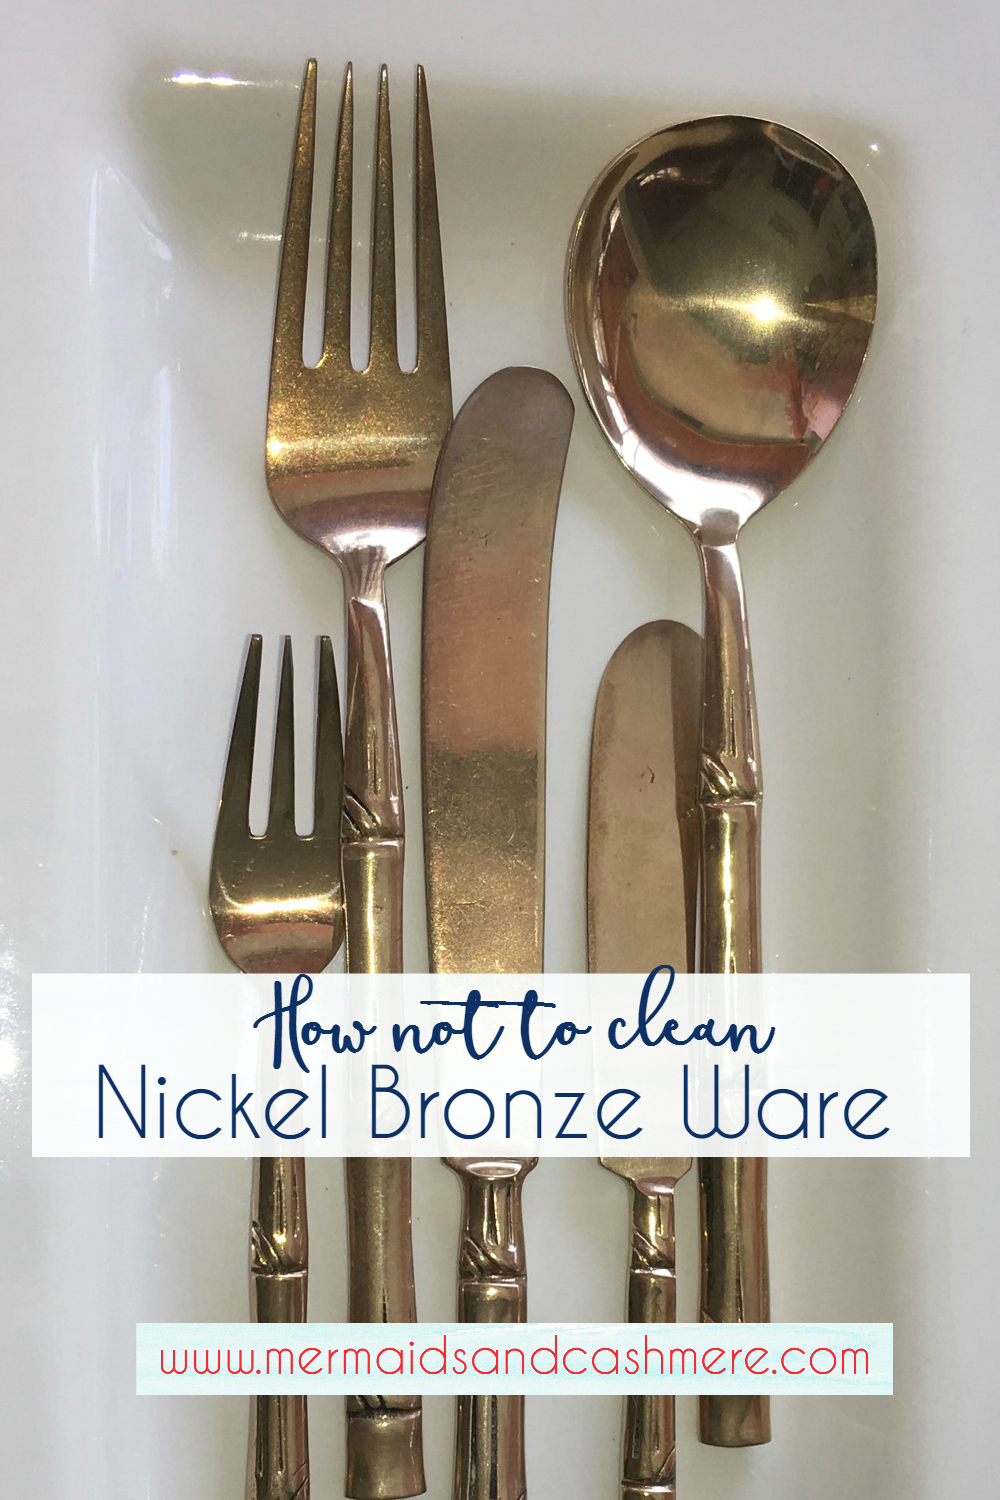 How to clean nickel silver spoons at home: 6 simple ways 68